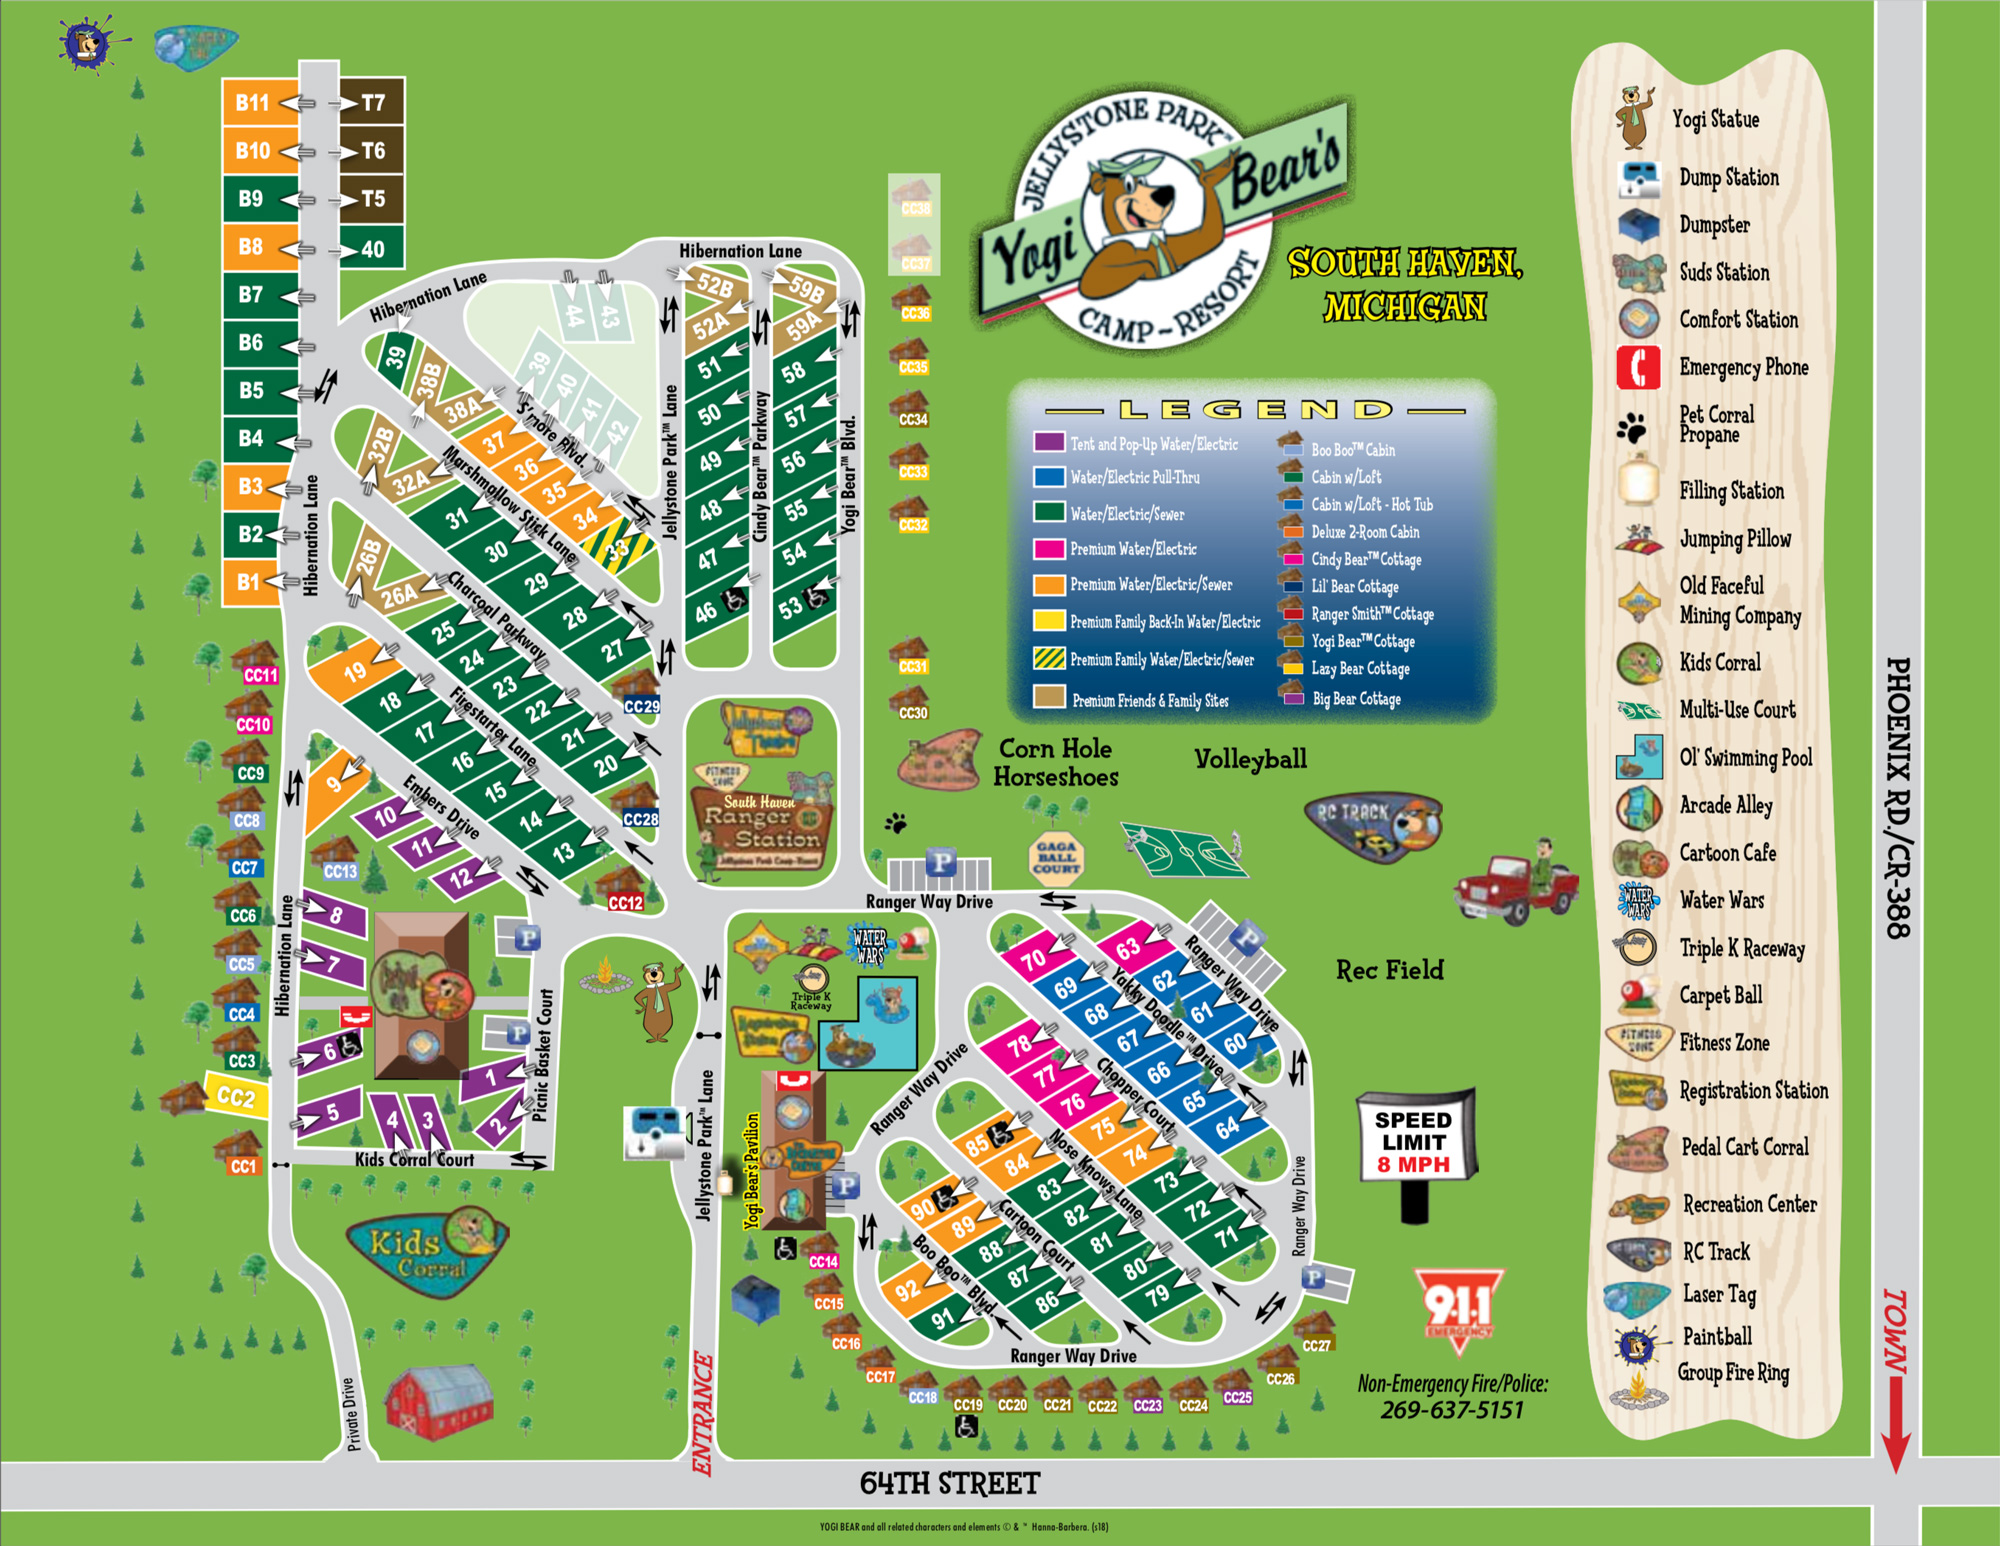 Map of the Property | Yogi Bear's Jellystone Park™ Camp-Resort | South Haven, MI